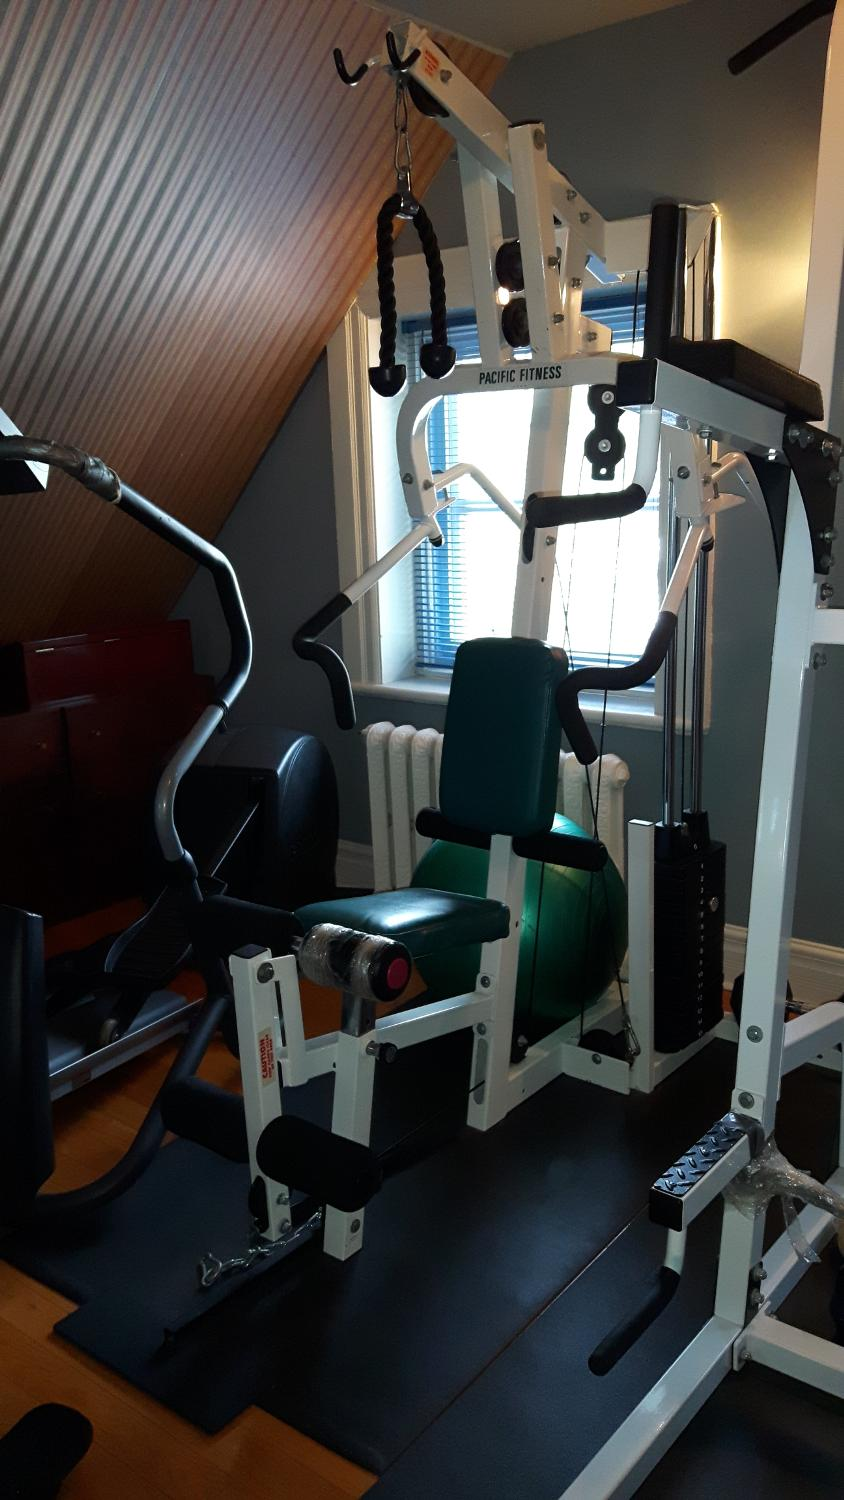 Find more pacific fitness zuma home gym weight station